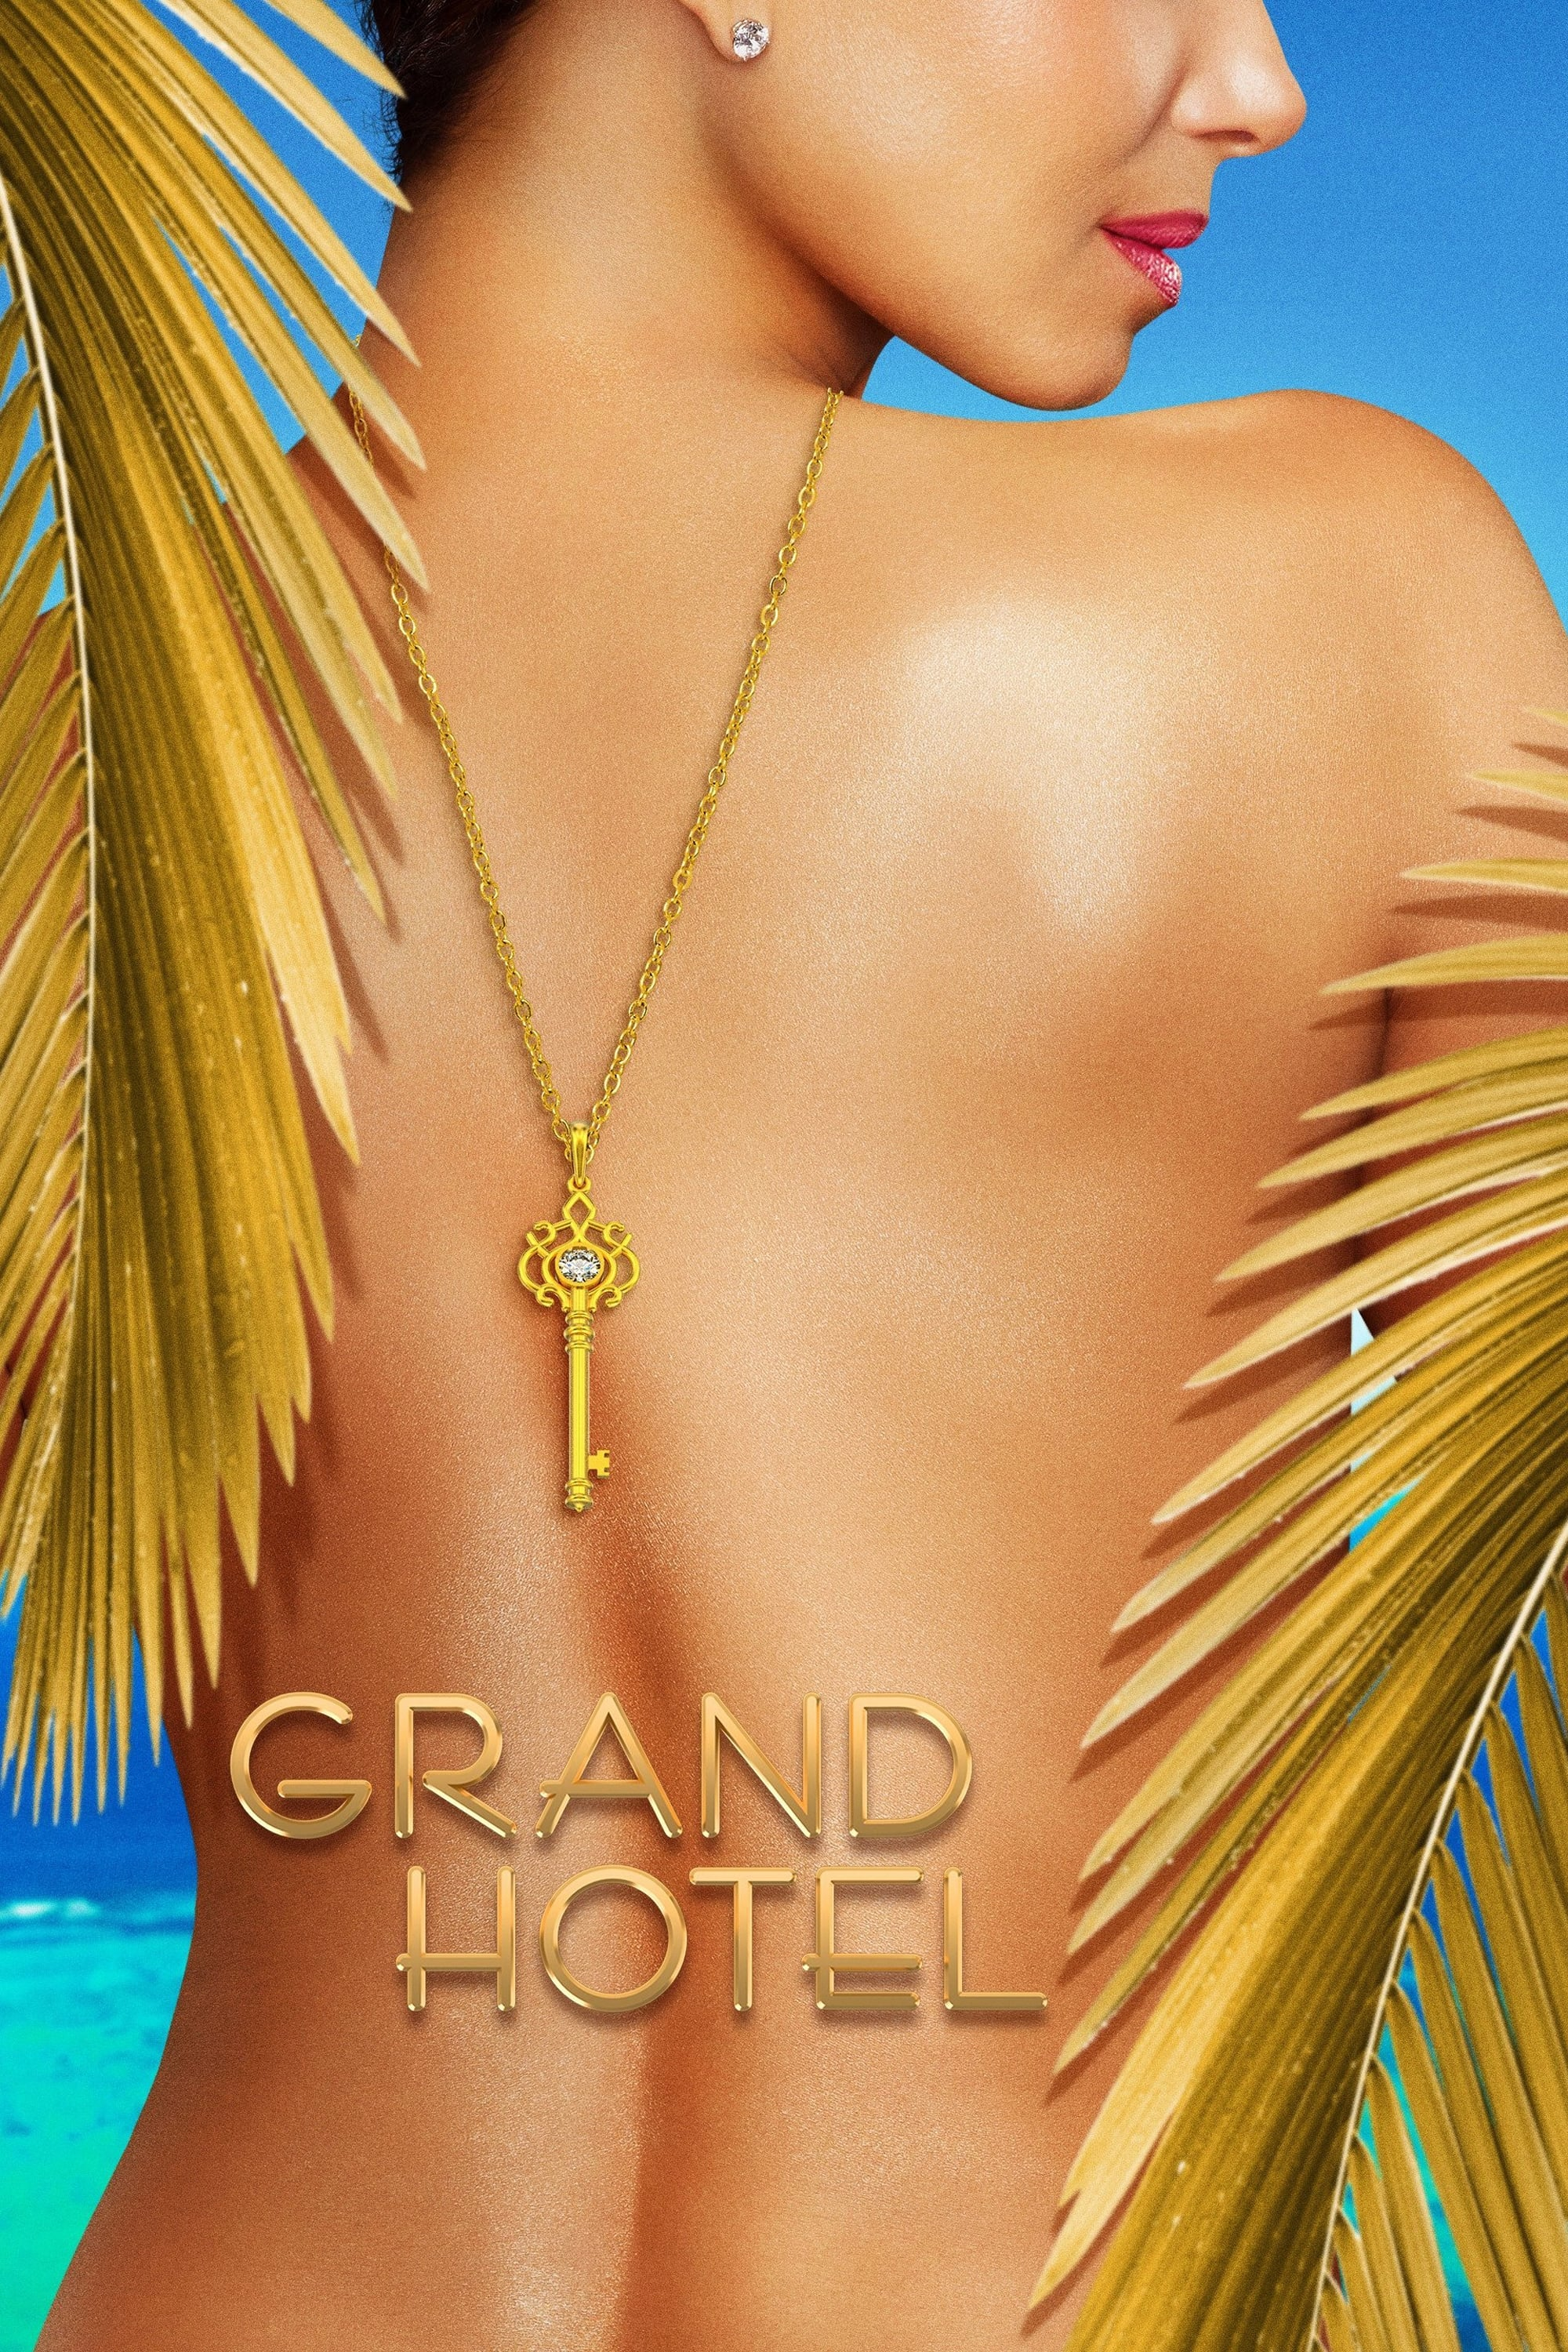 Grand Hotel series tv complet